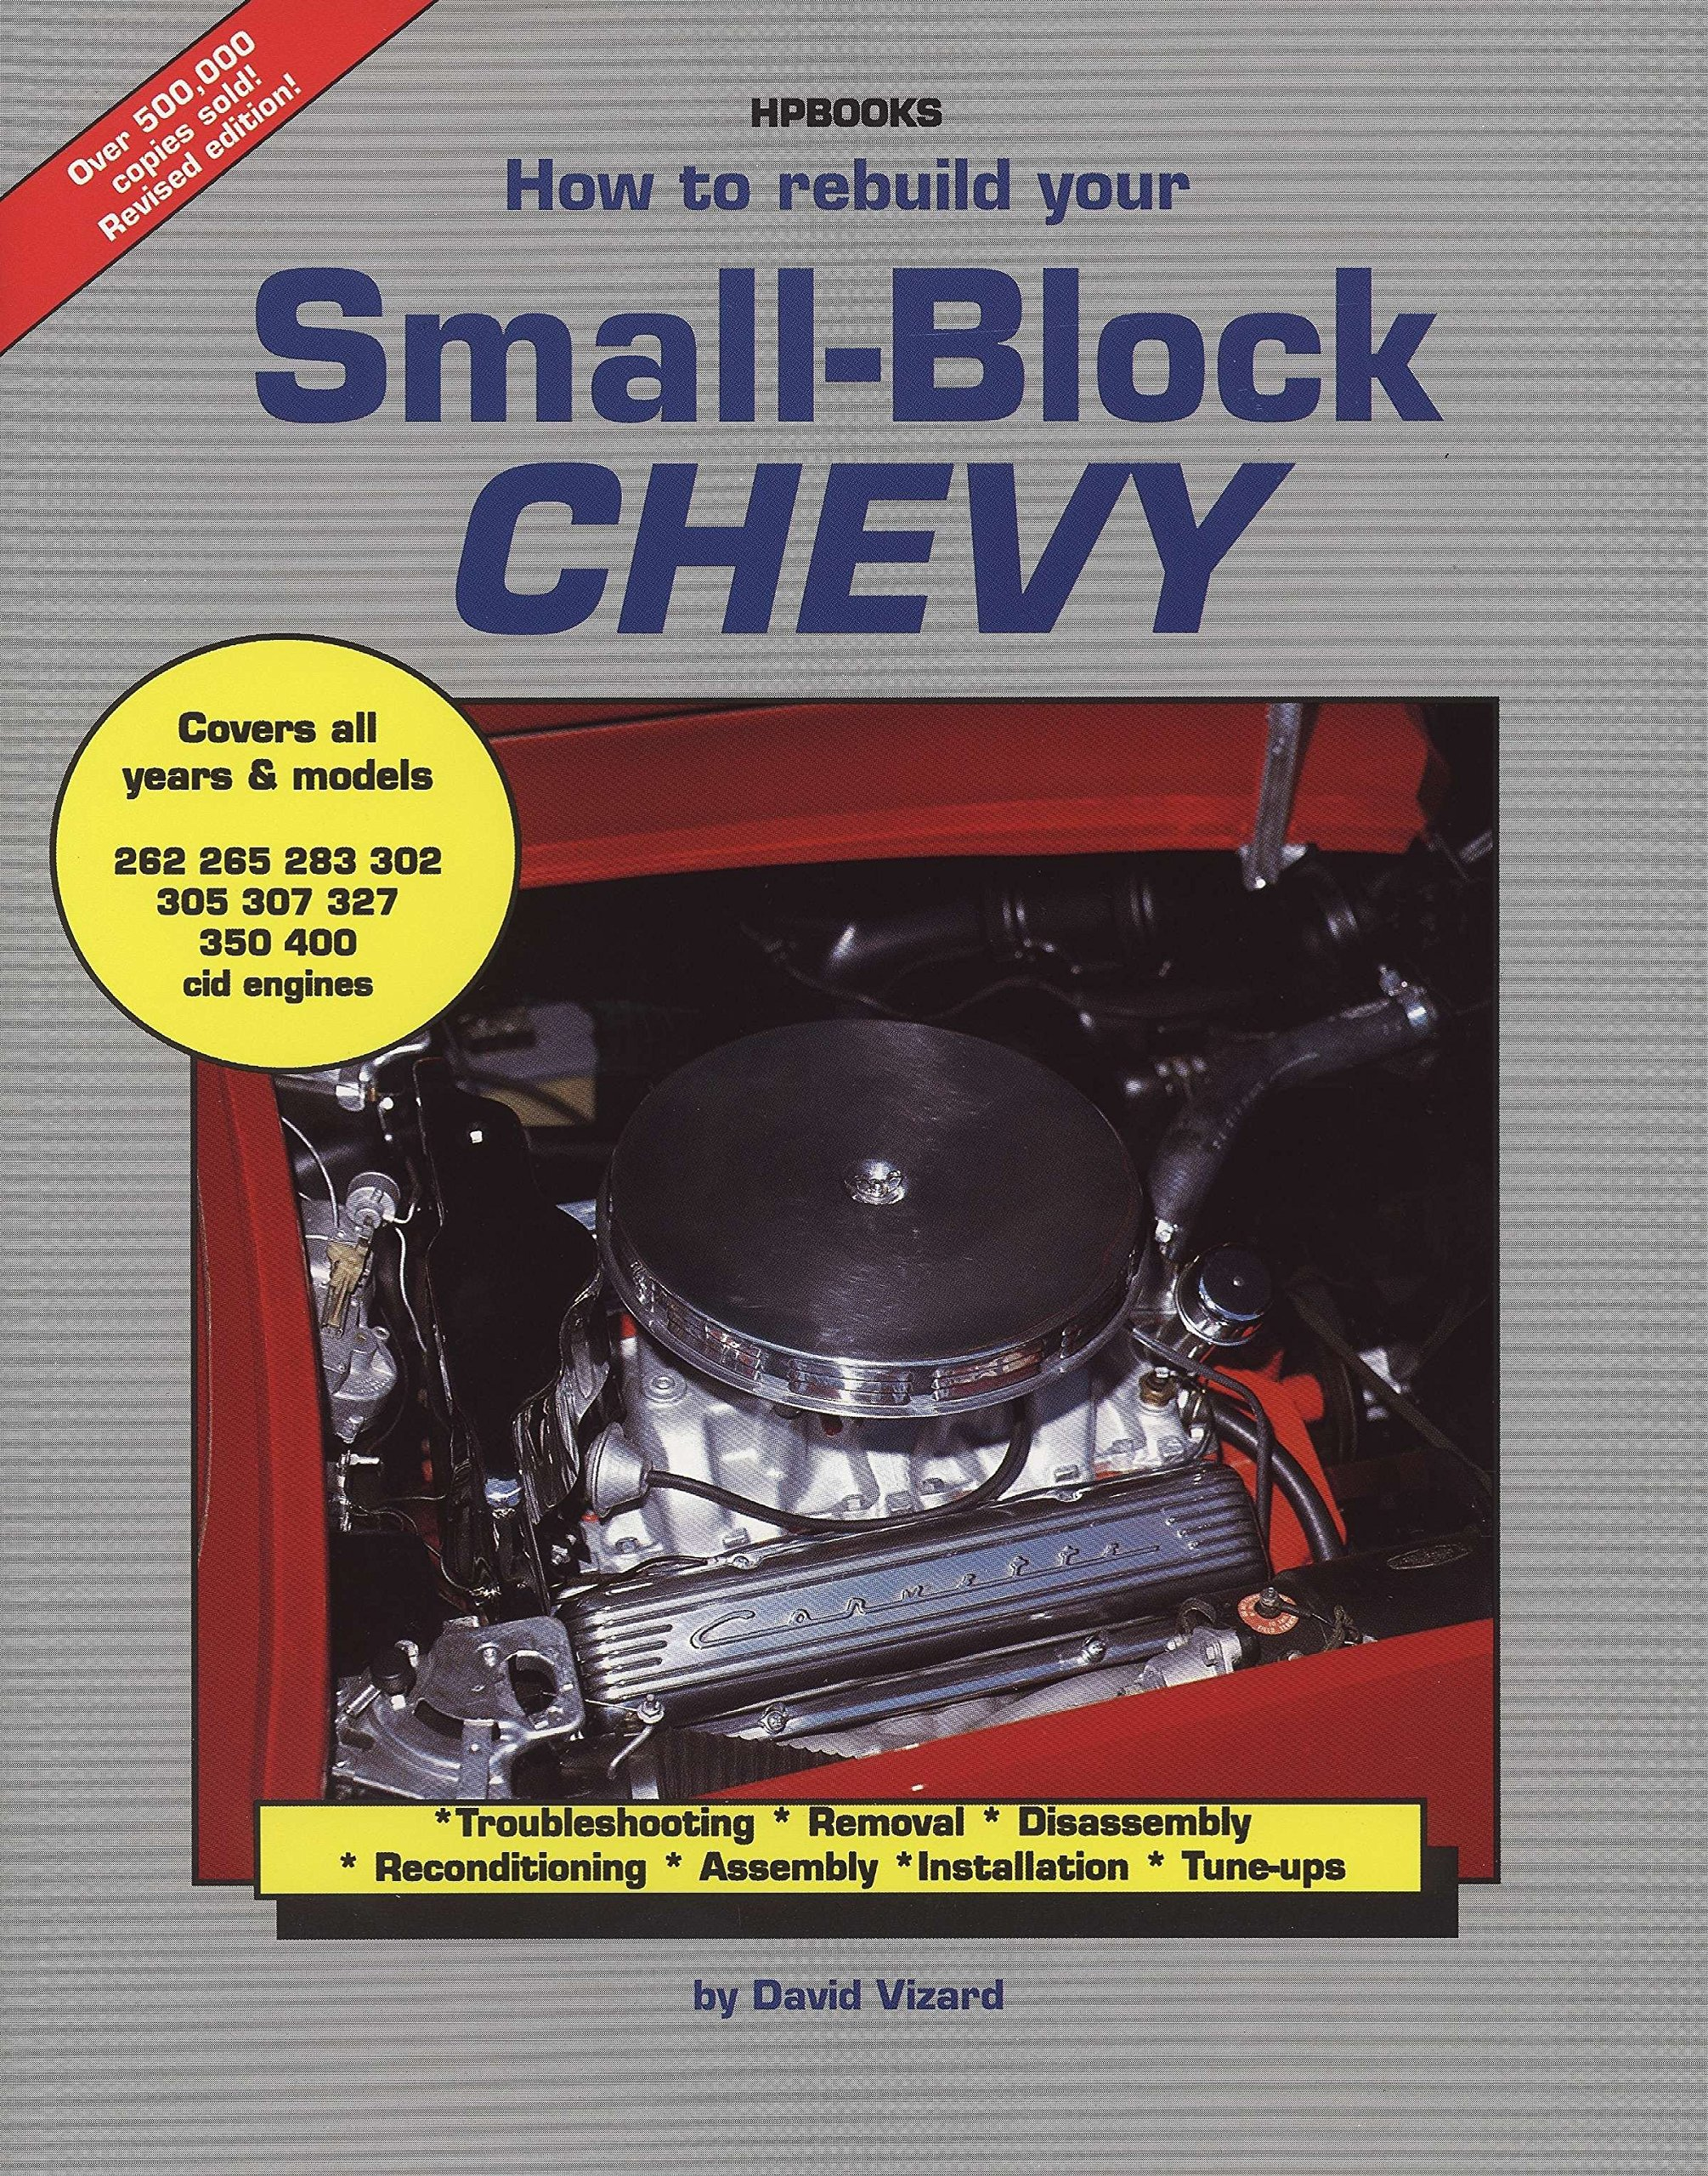 how to rebuild your small block chevy david vizard 0075478010295 Chevy 5.7 Engine Diagram